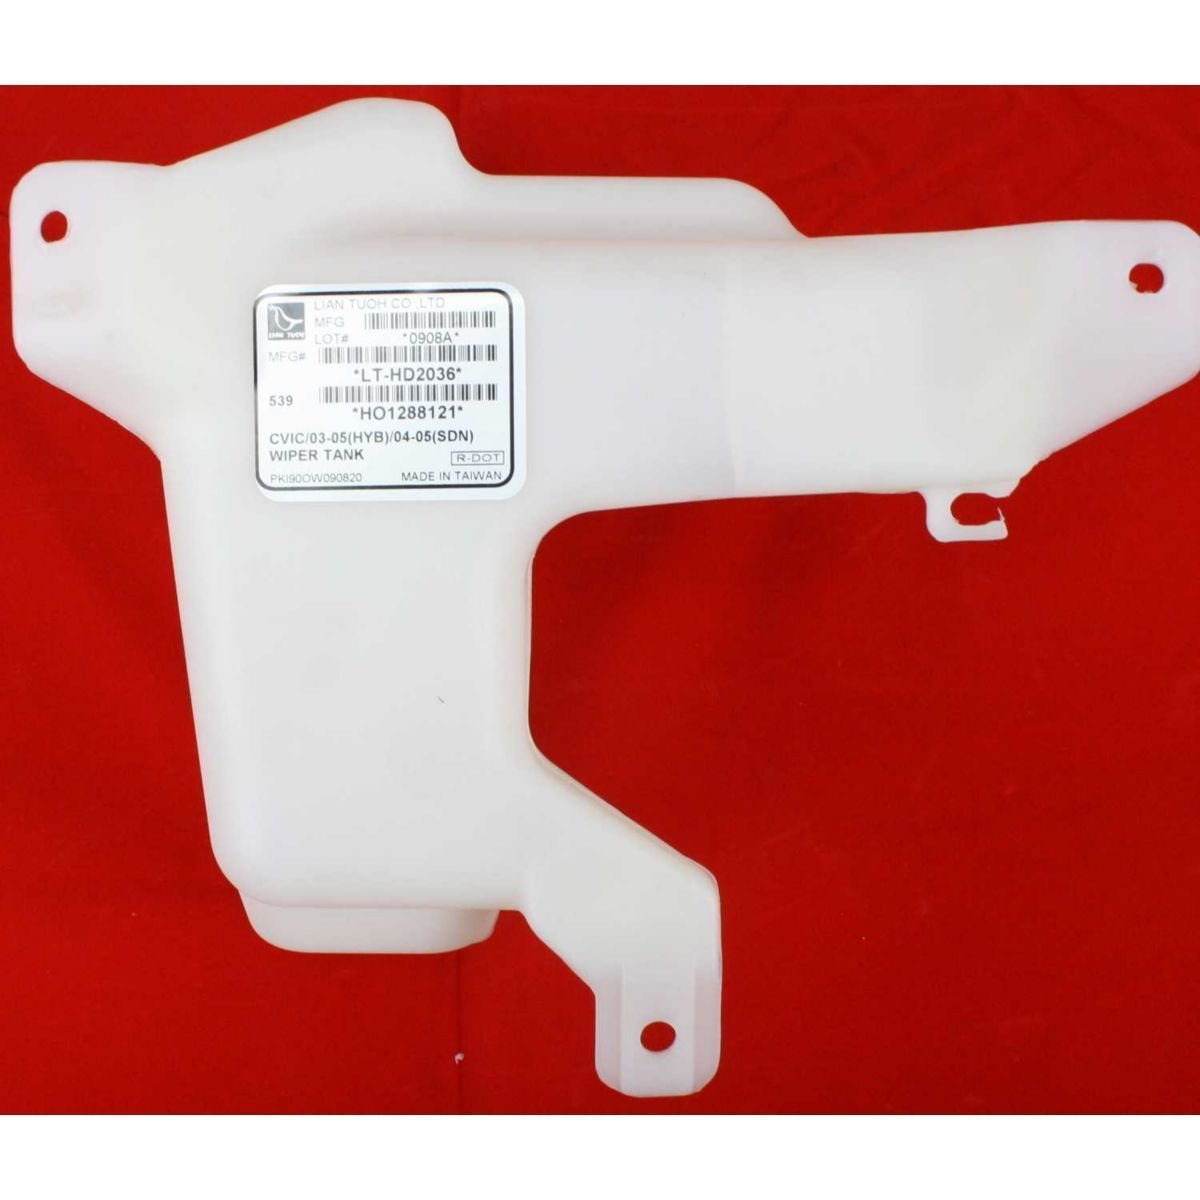 Diften 102-A7307-X01 - New Washer Reservoir Sedan Honda Civic 2005 2004 2003 HO1288121 76840S5B013